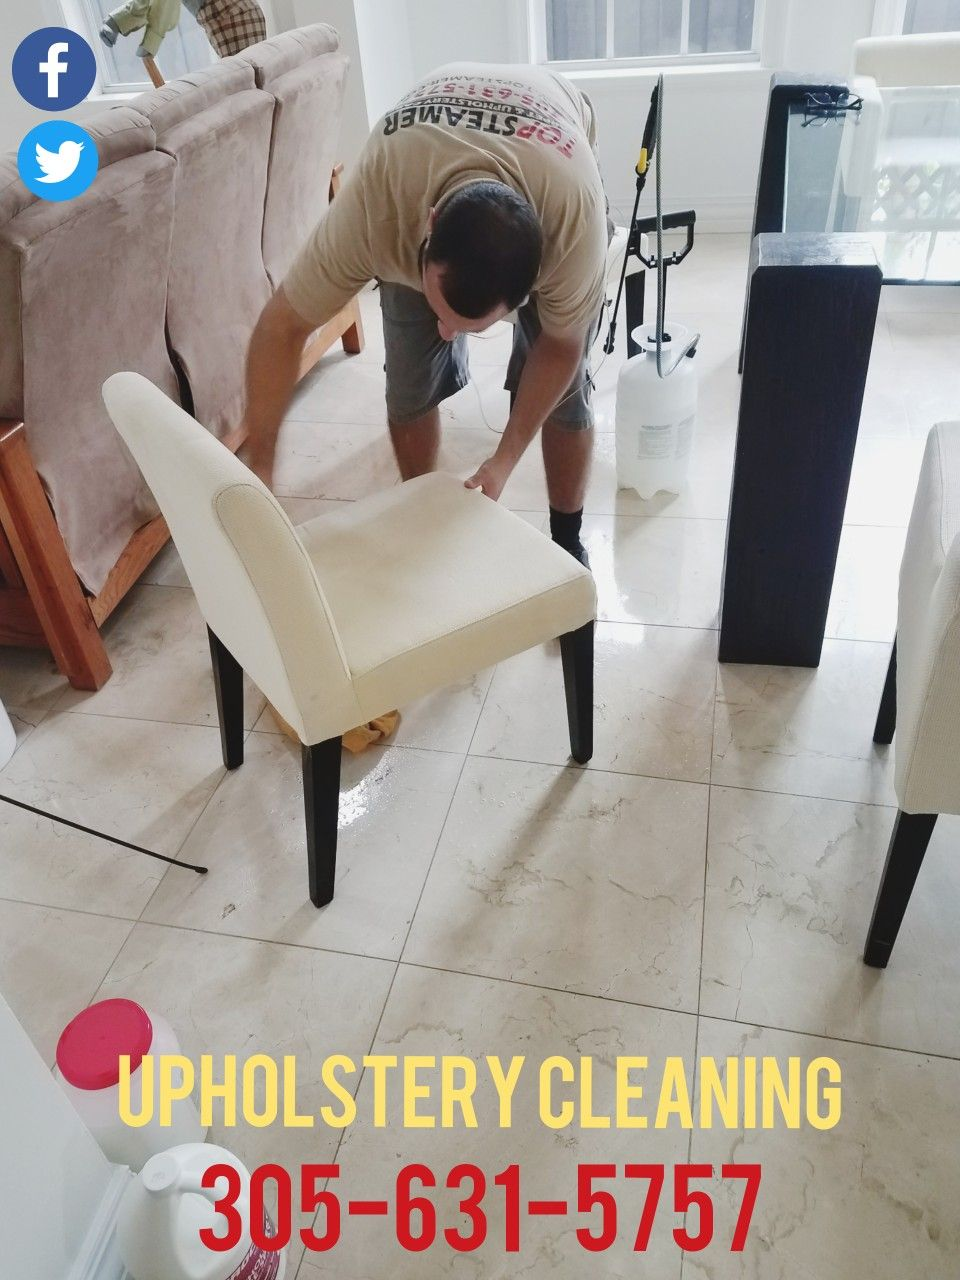 Upholstery Cleaning Coconut Grove 305 631 5757 Https Www